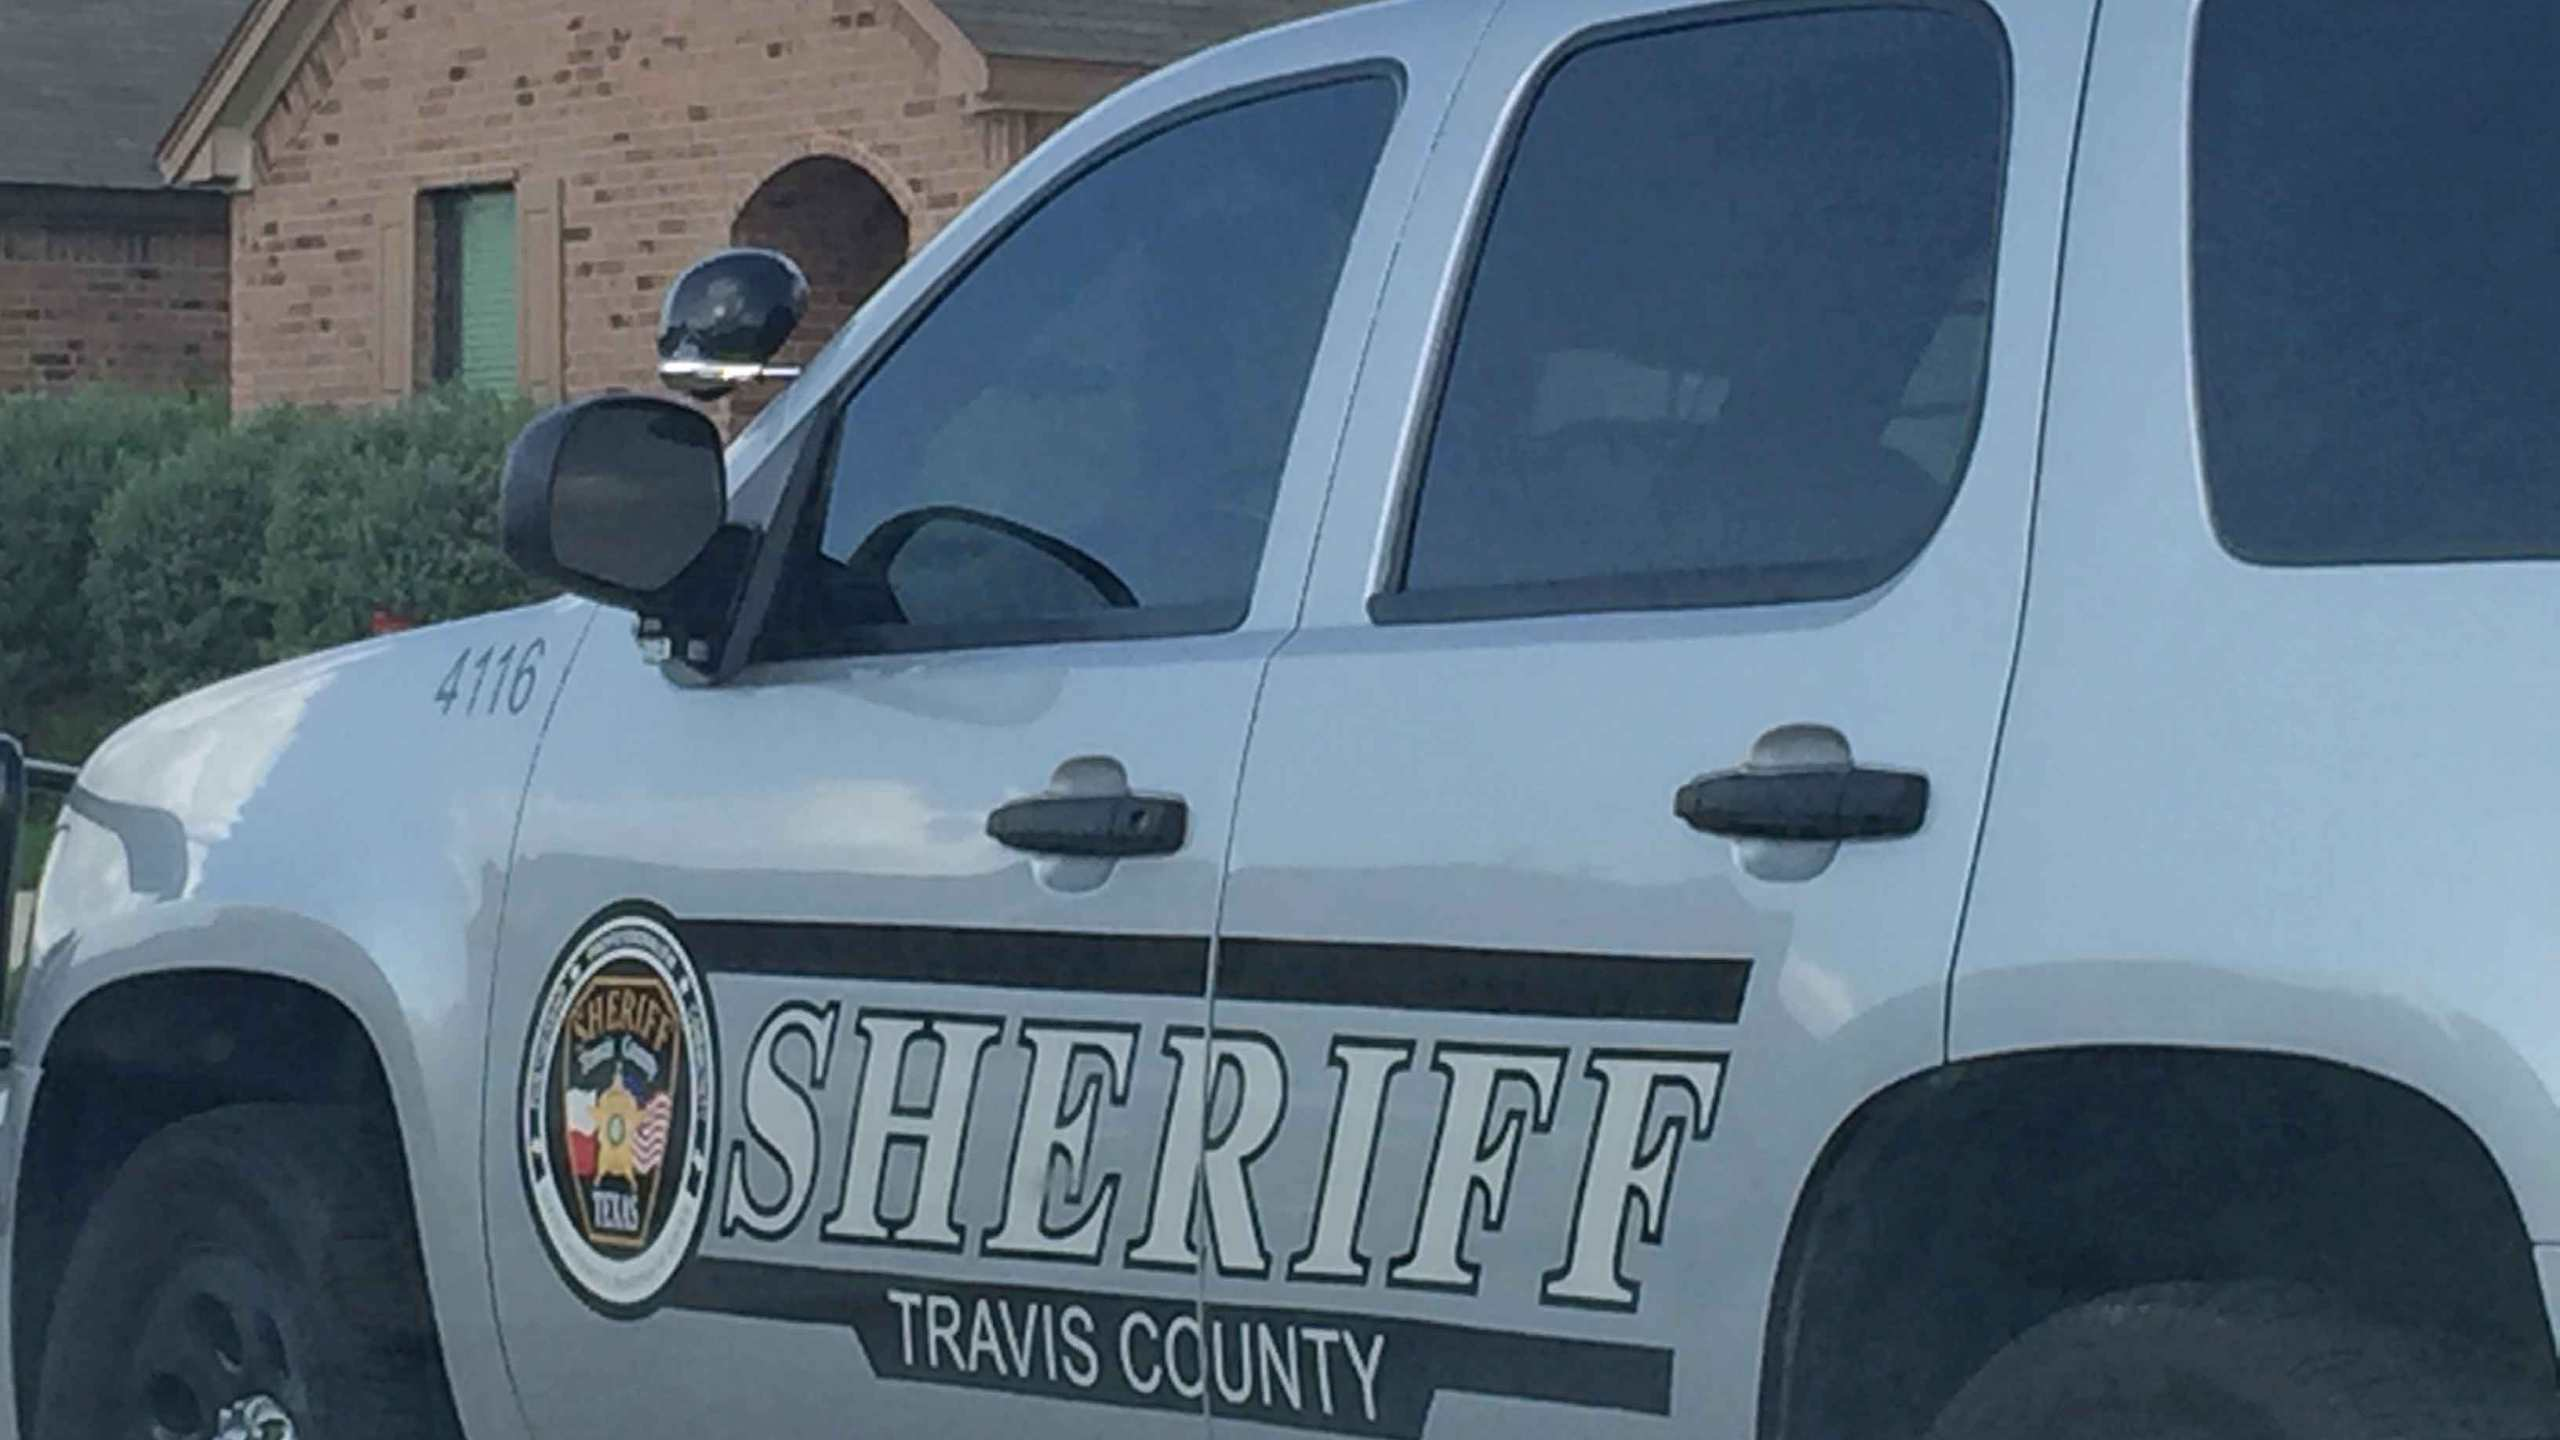 TCSO Travis County Sheriff's Office_119442